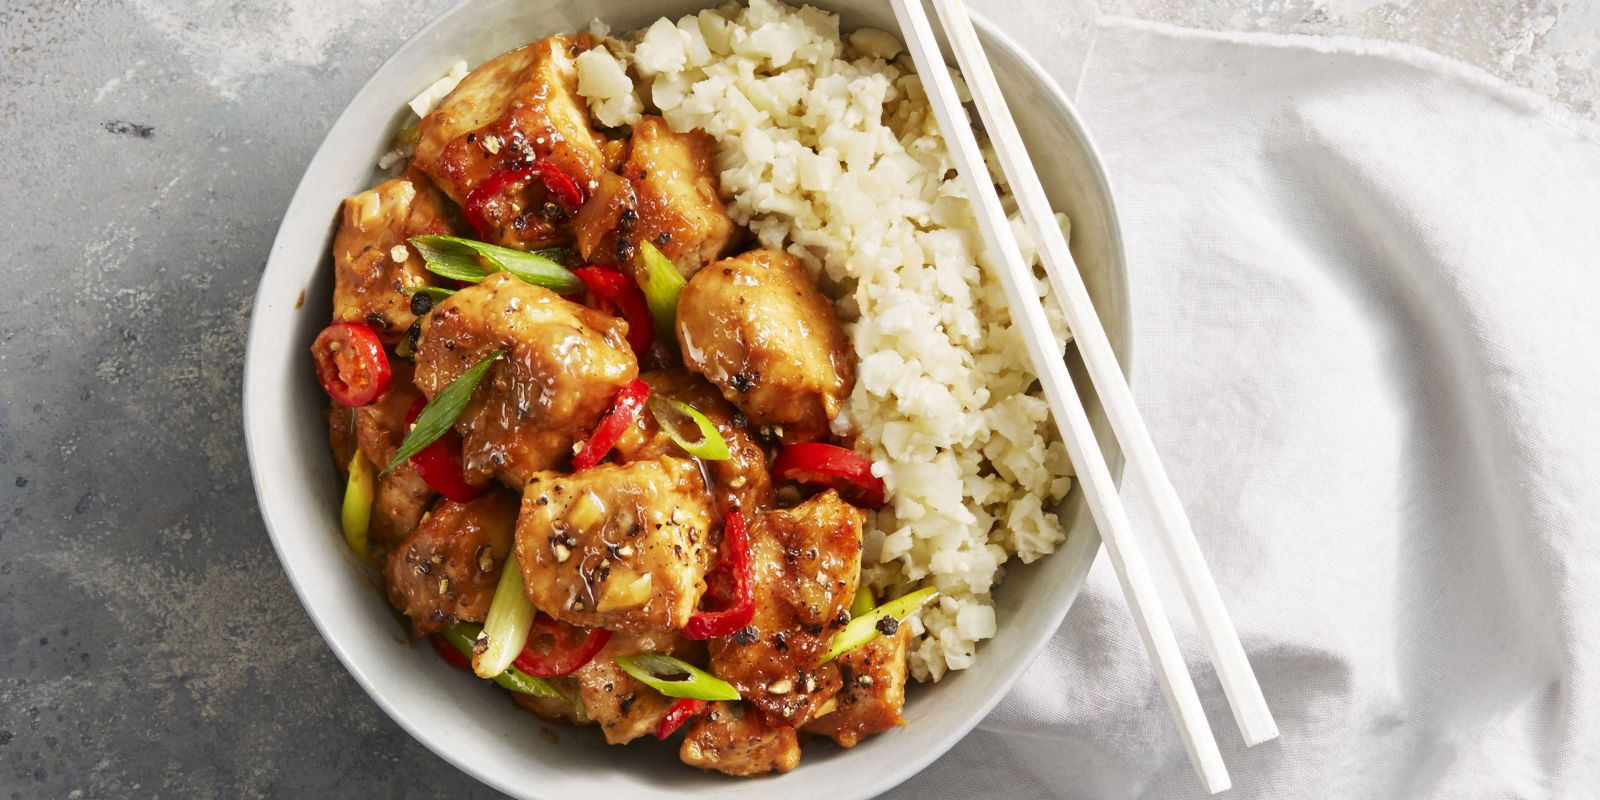 Spicy chicken miso stir fry recipe cauliflower low carb recipes cauliflower florets pulsed in a food processor stand in for rice in this delicious low forumfinder Gallery